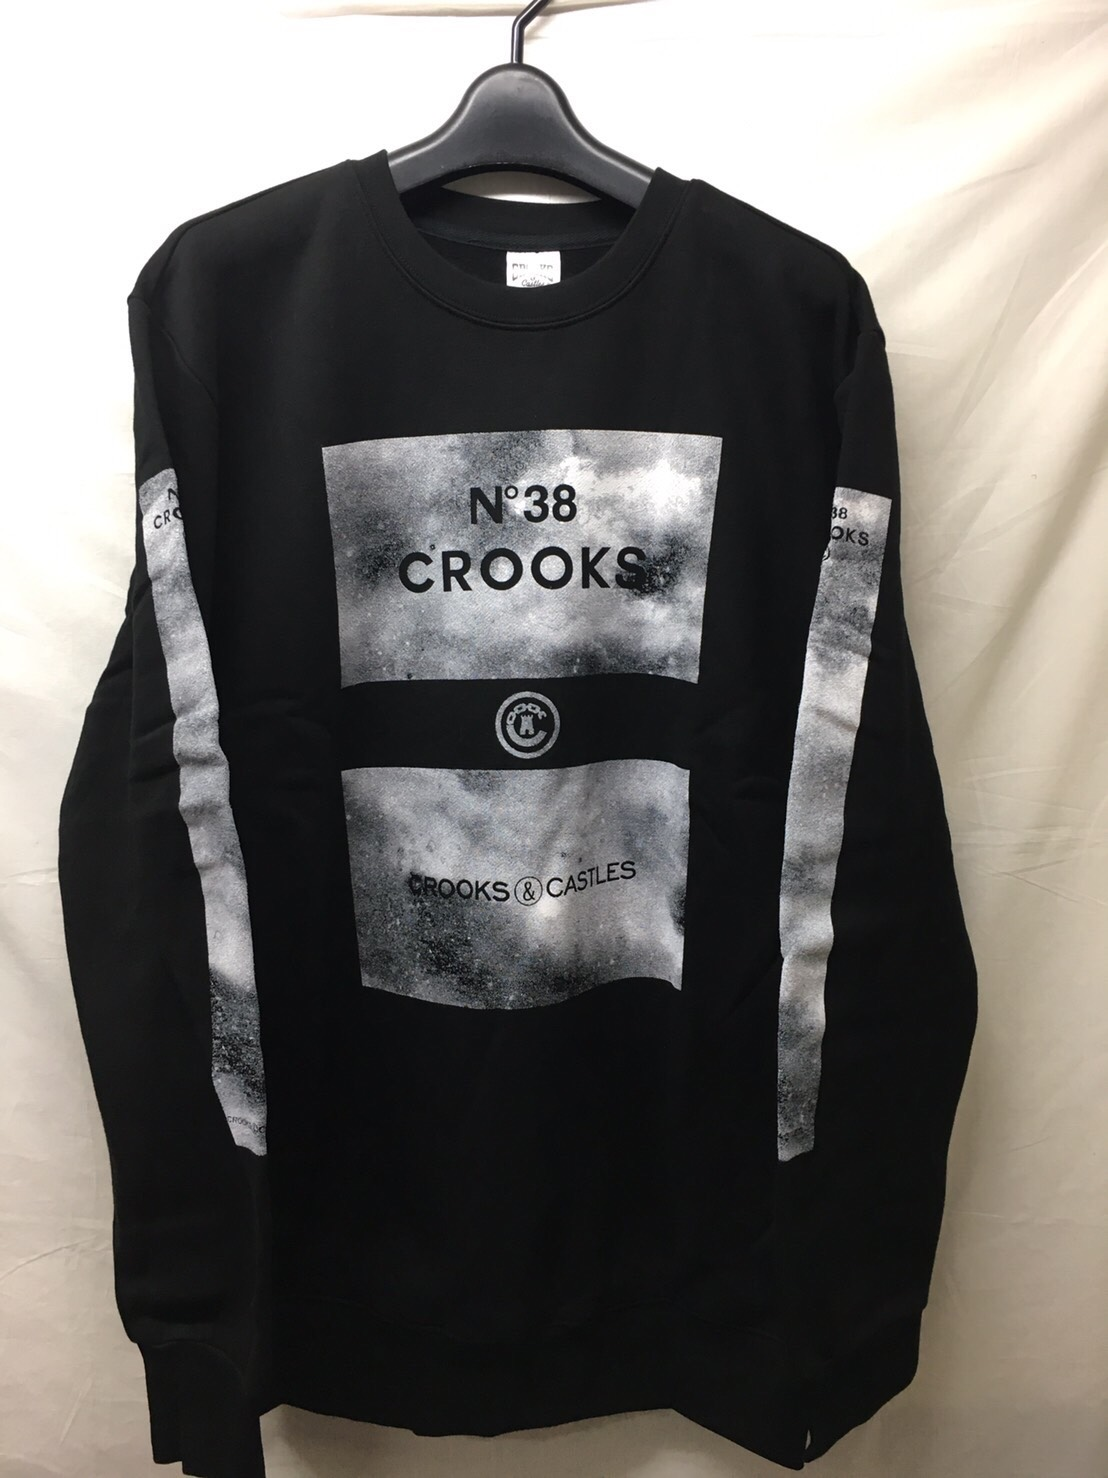 crooks_sweatshirt01